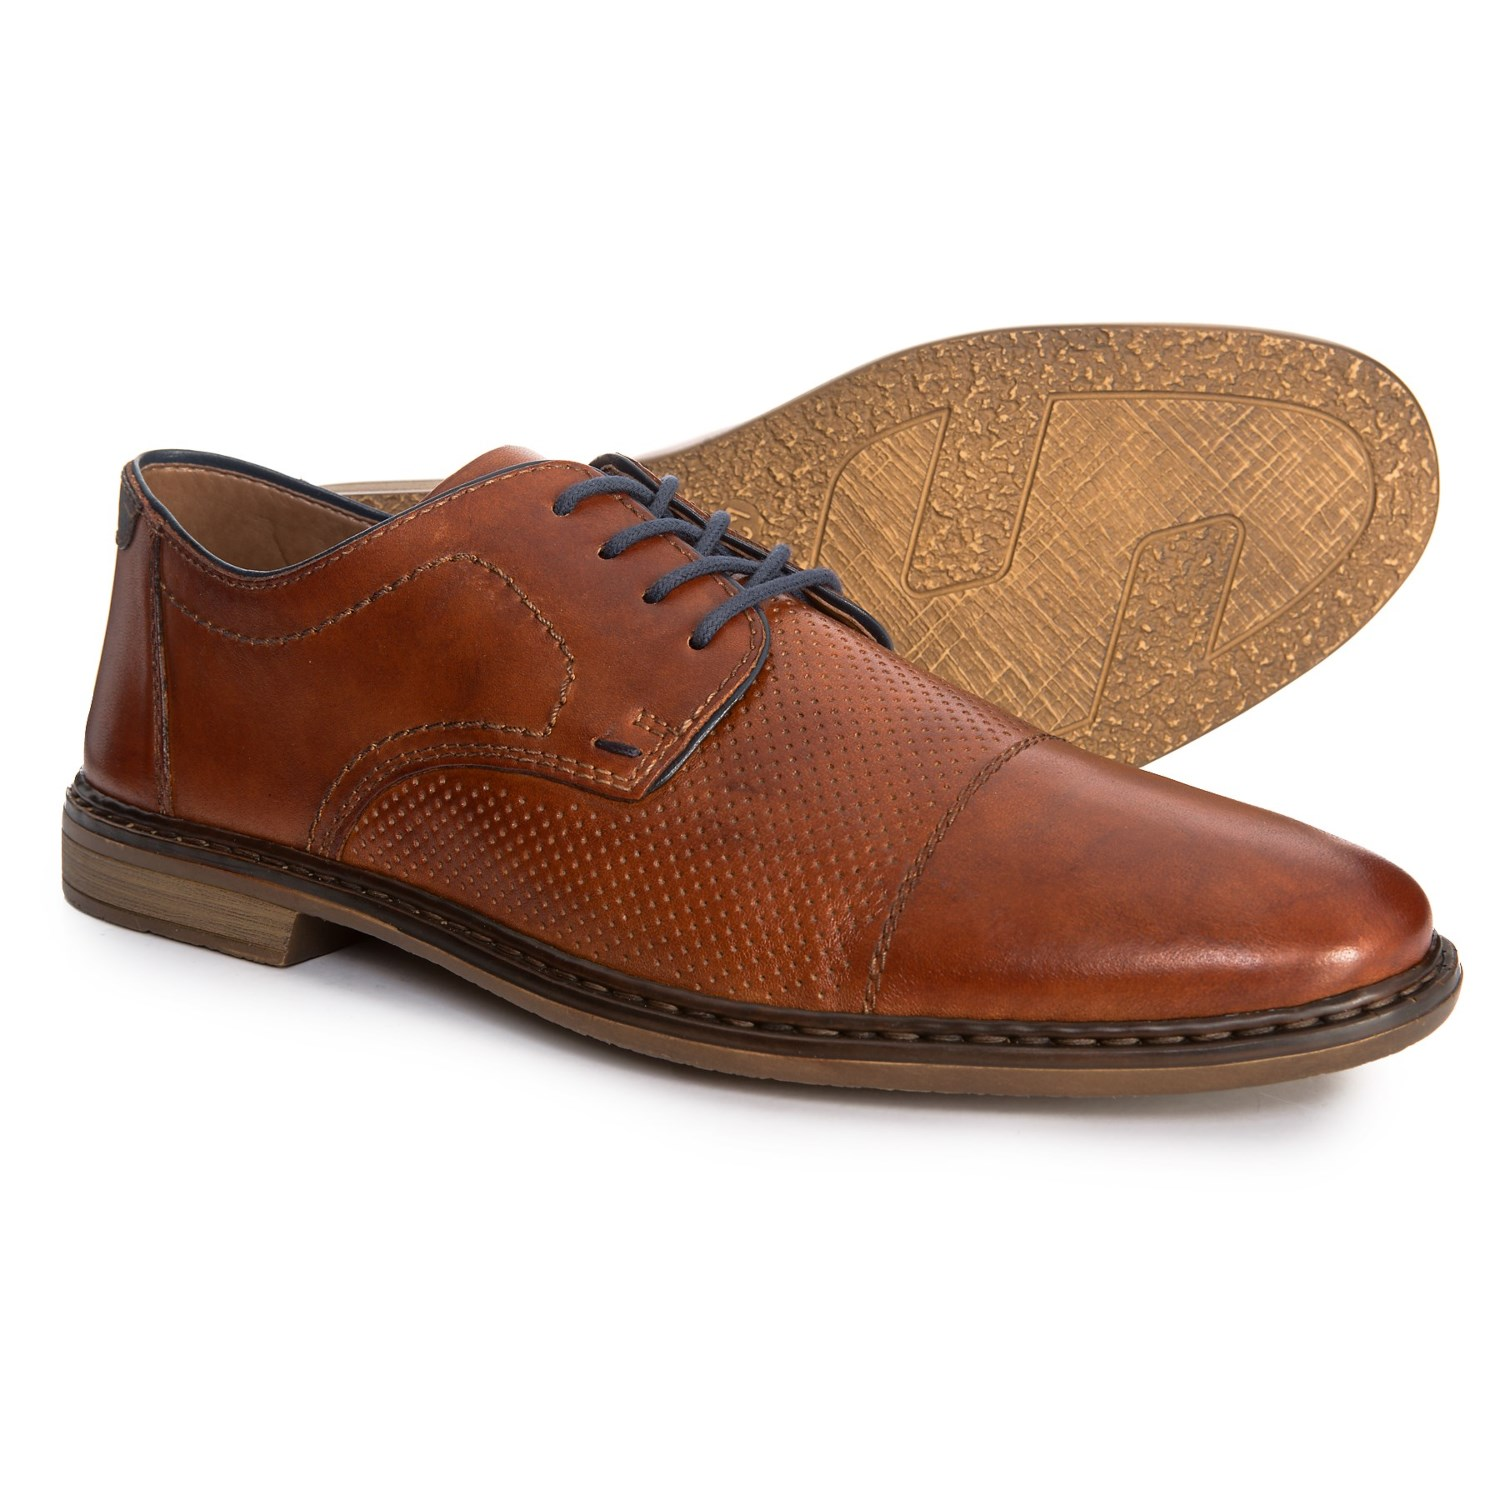 Rieker Diego 28 Oxford Shoes - Leather (For Men) in Amaretto